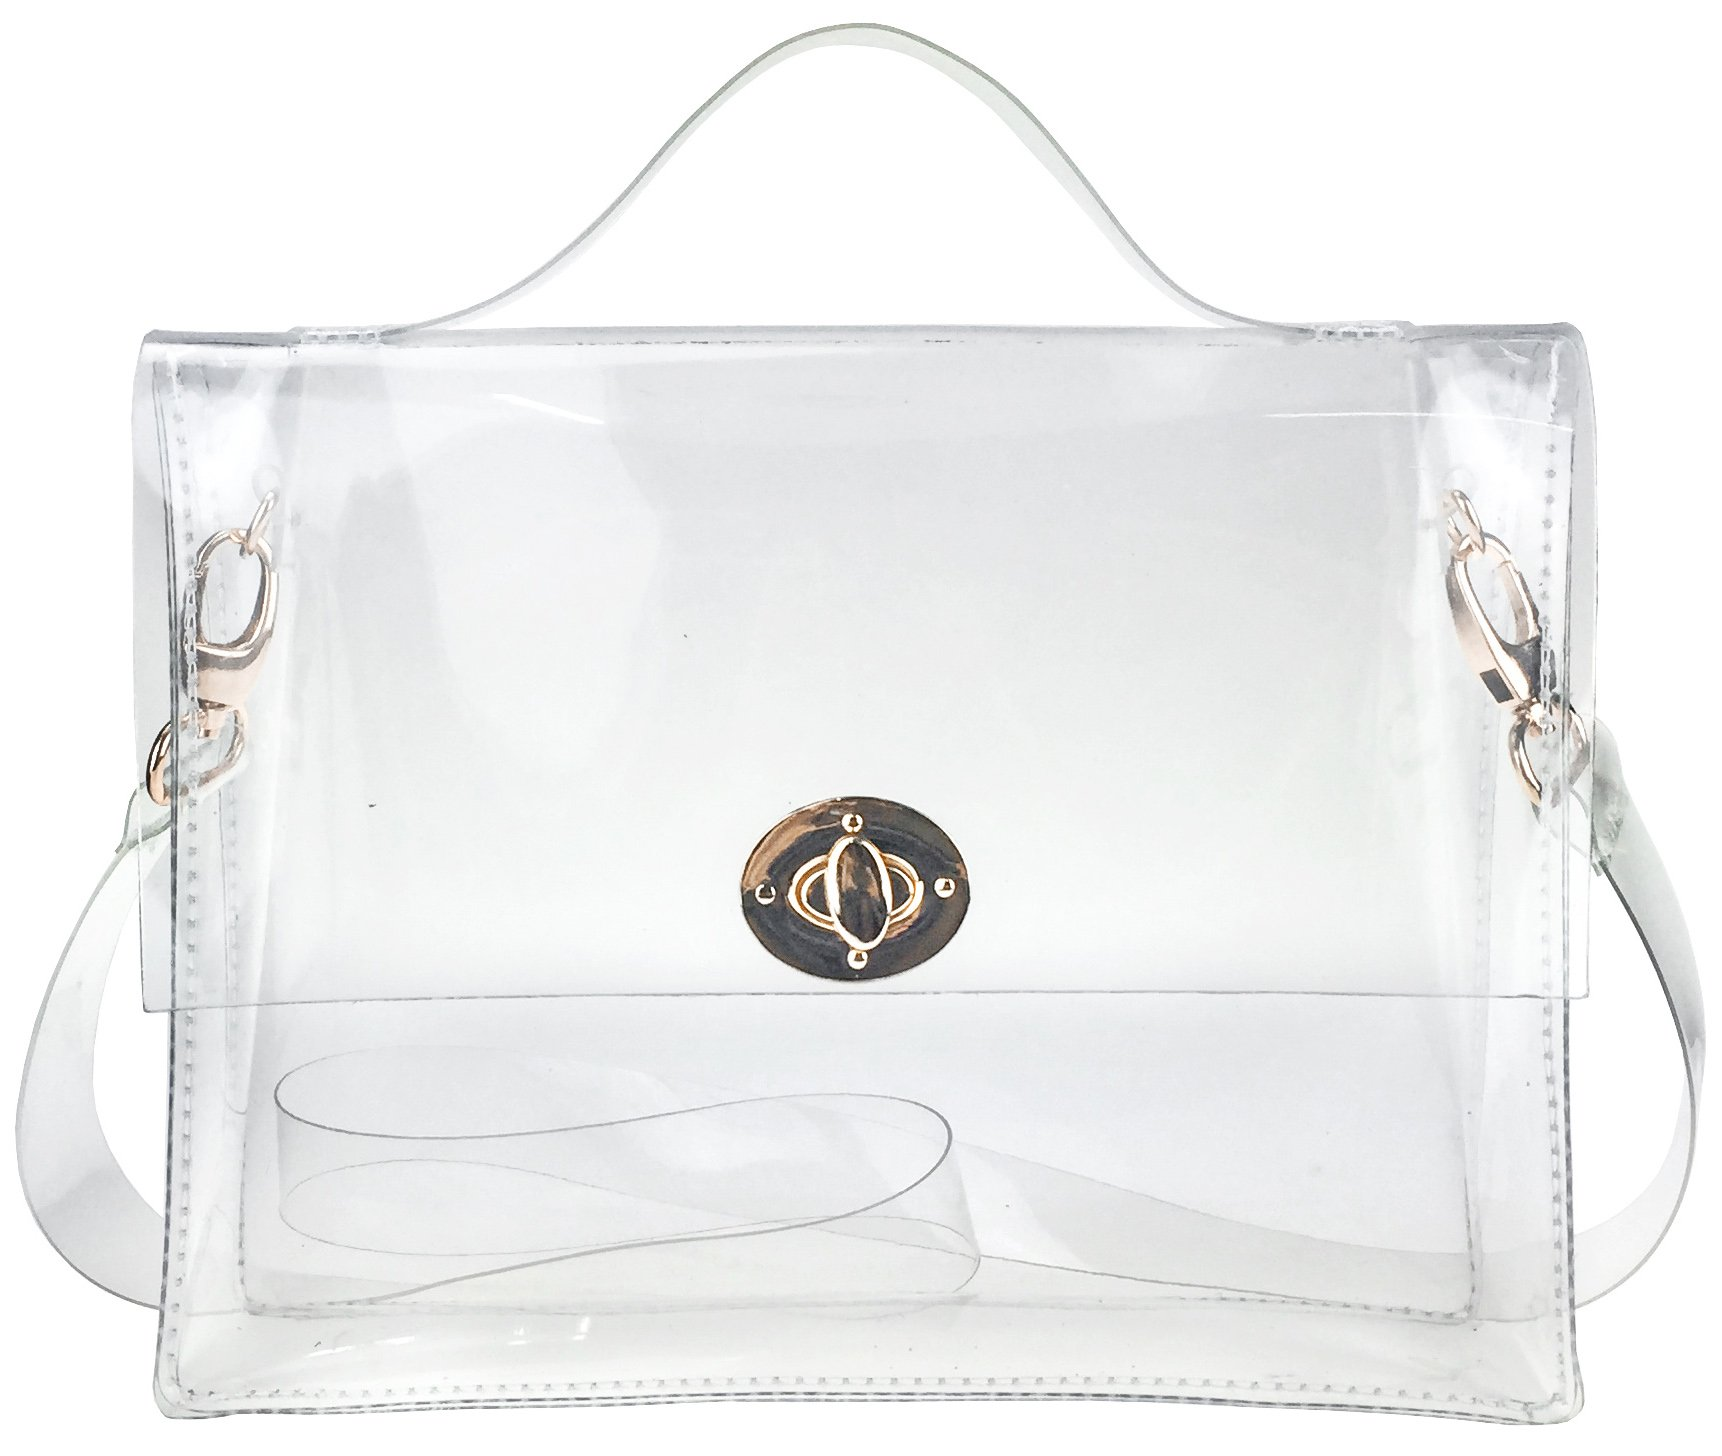 Clear Bag with Turn Lock Closure Cross Body Bag Women's Satchel Transparent Messenger Shoulder Handbag(NFL Stadium Approved)